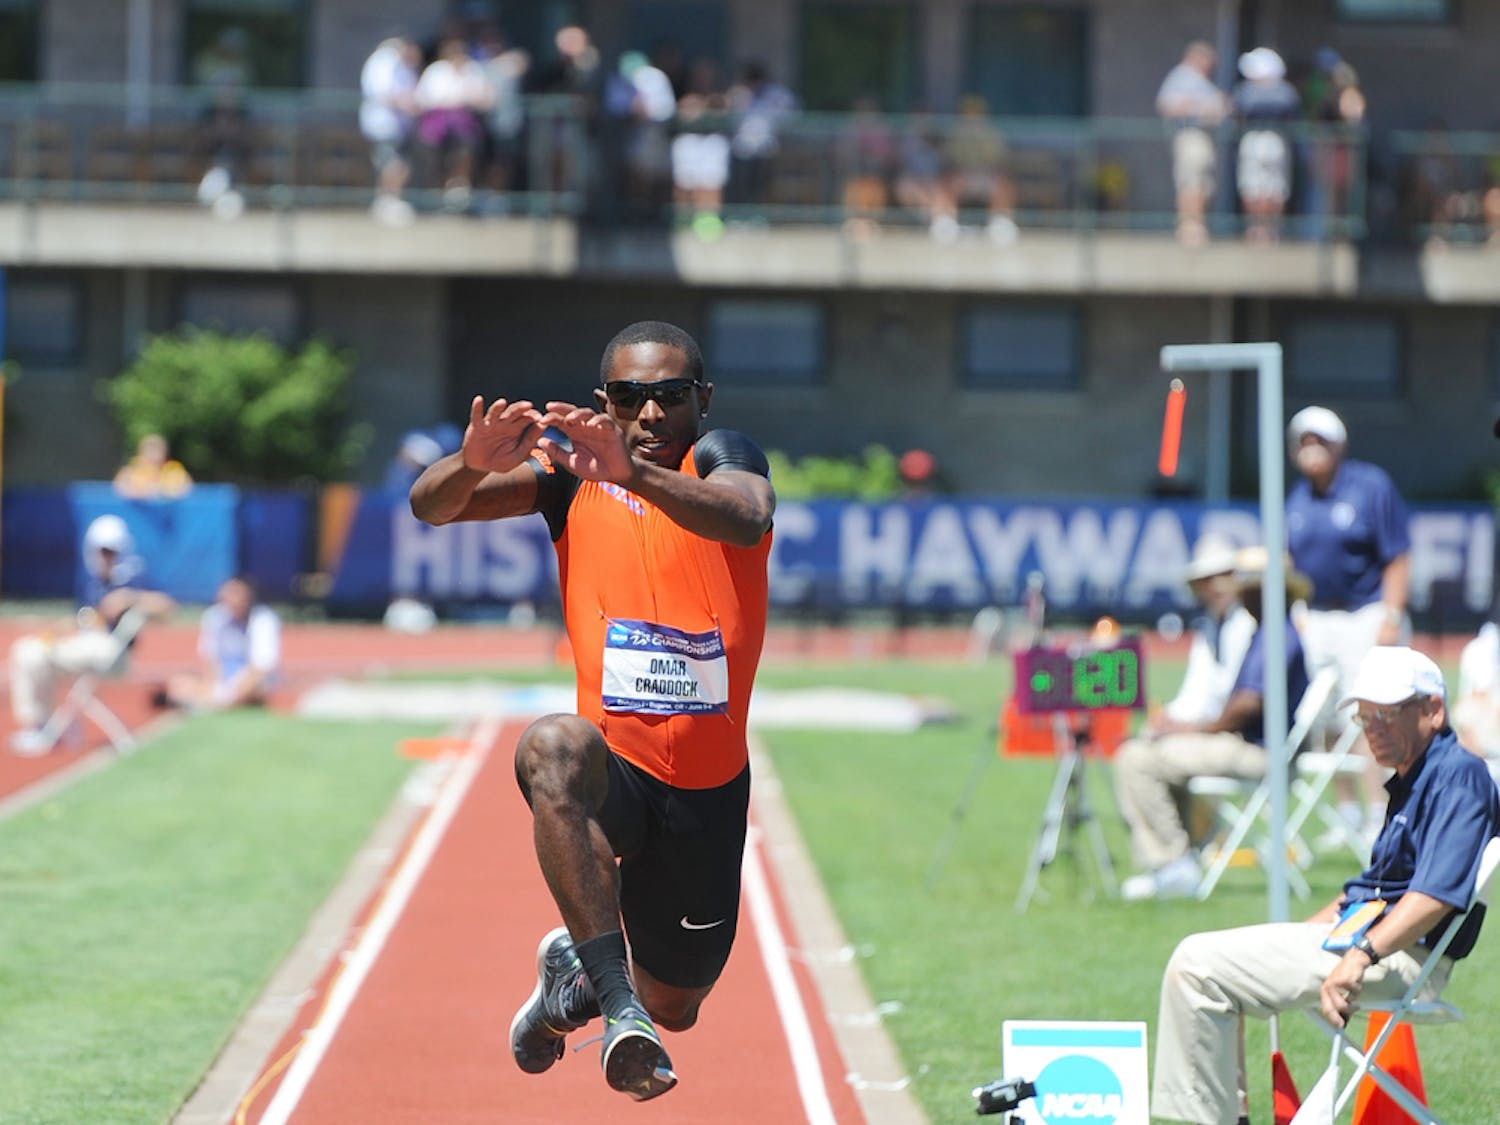 Omar Craddock competes in the triple jump on the final day of the 2013 NCAA Outdoor Track and Field Championships in Eugene, Oregon.